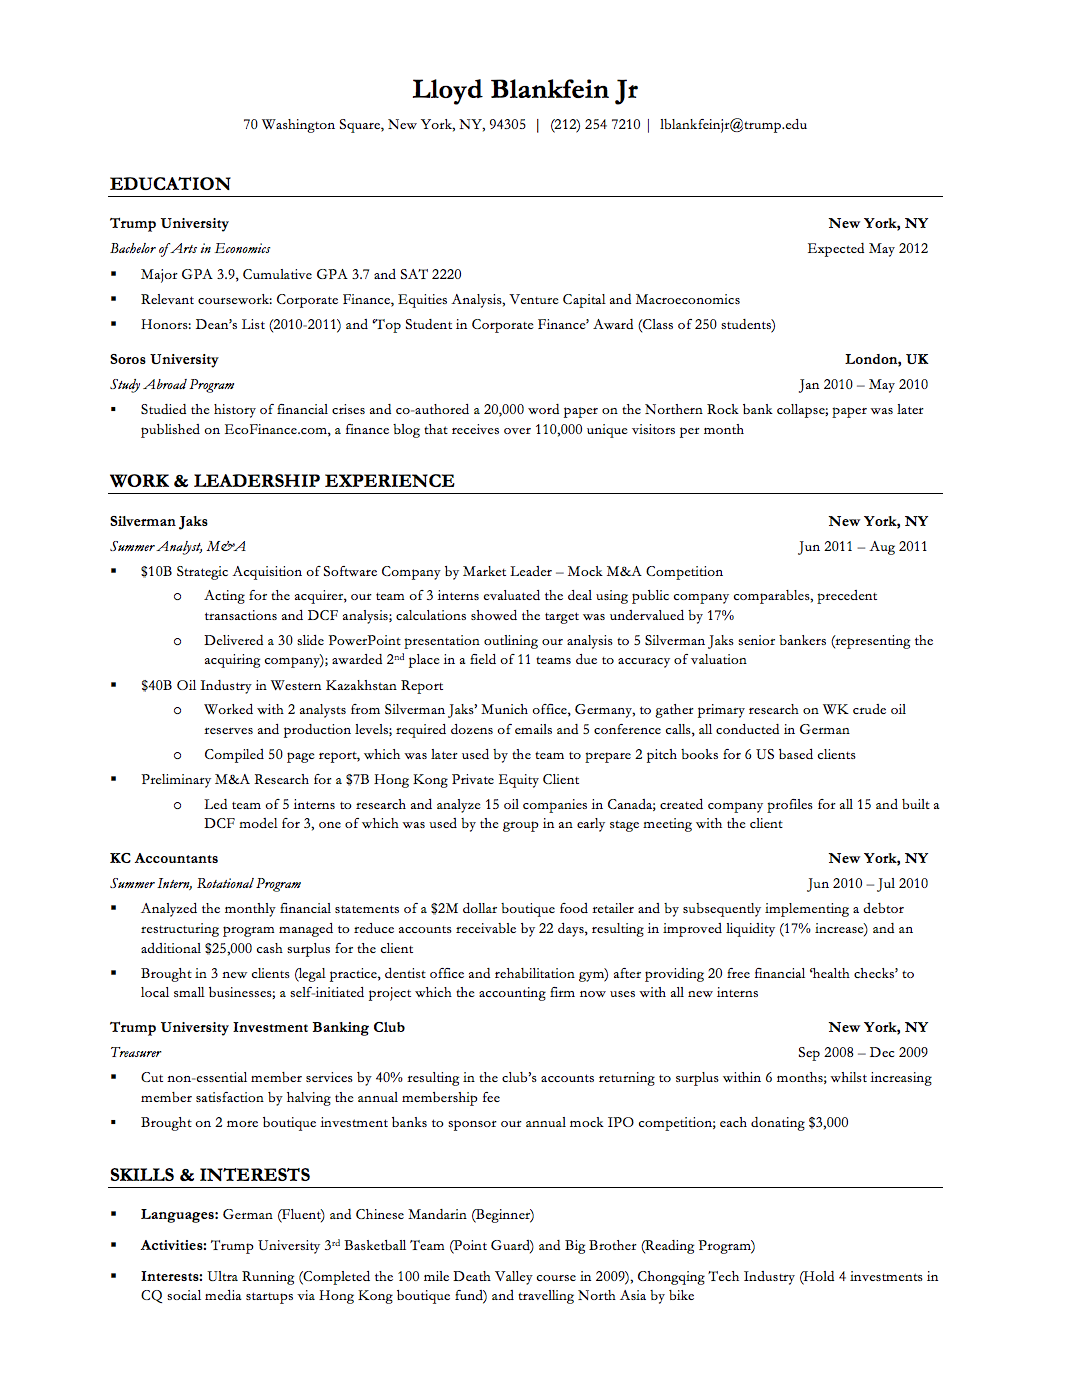 Superior Investment Banking Resume Samples For Investment Banking Analyst Resume